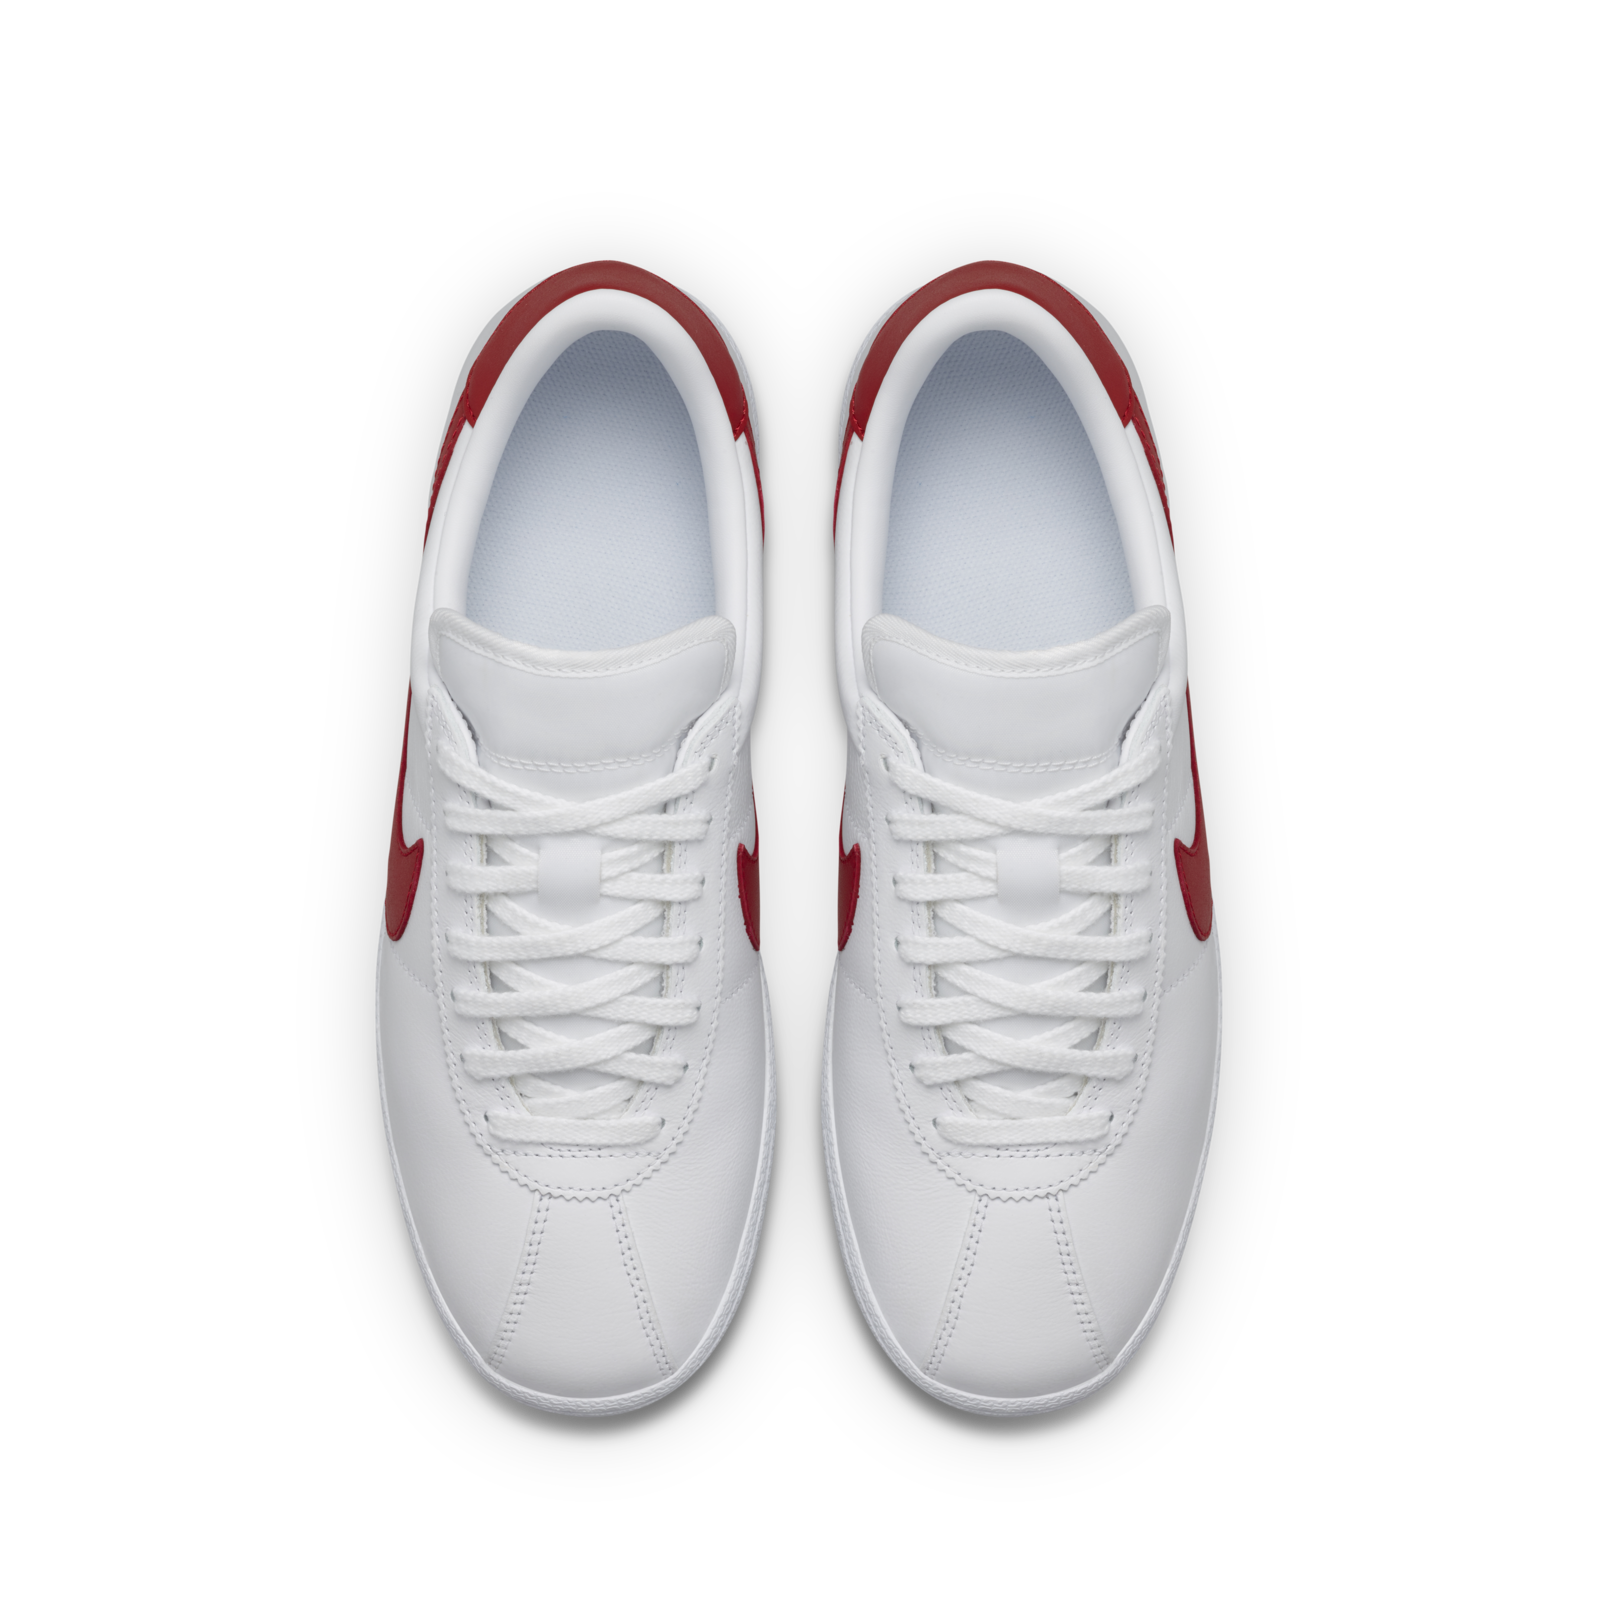 nike bruin shoes red swoosh